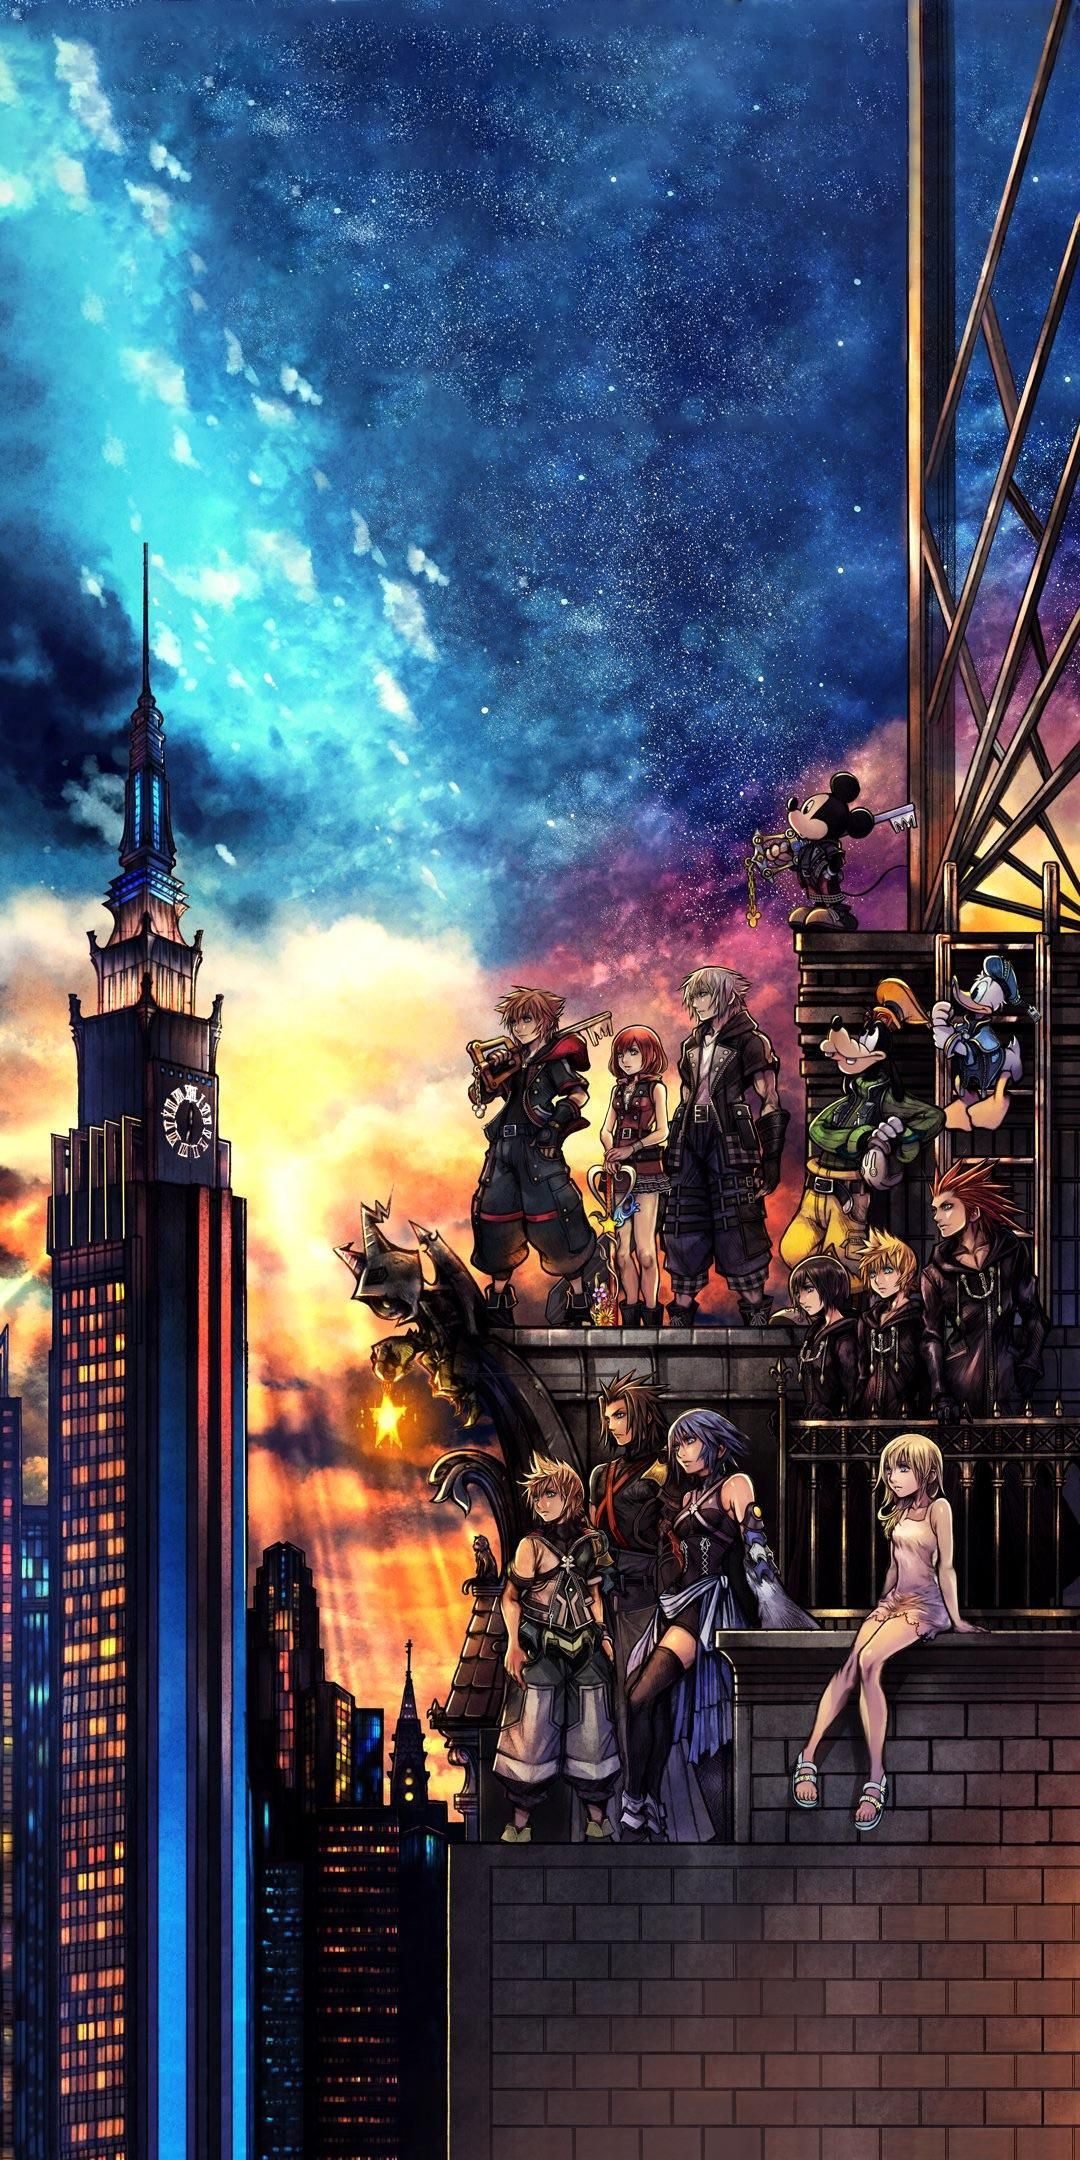 Download Kingdom Hearts Iphone Xs Max Wallpaper Kingdom Hearts Wallpaper Kingdom Hearts Fanart Kingdom Hearts